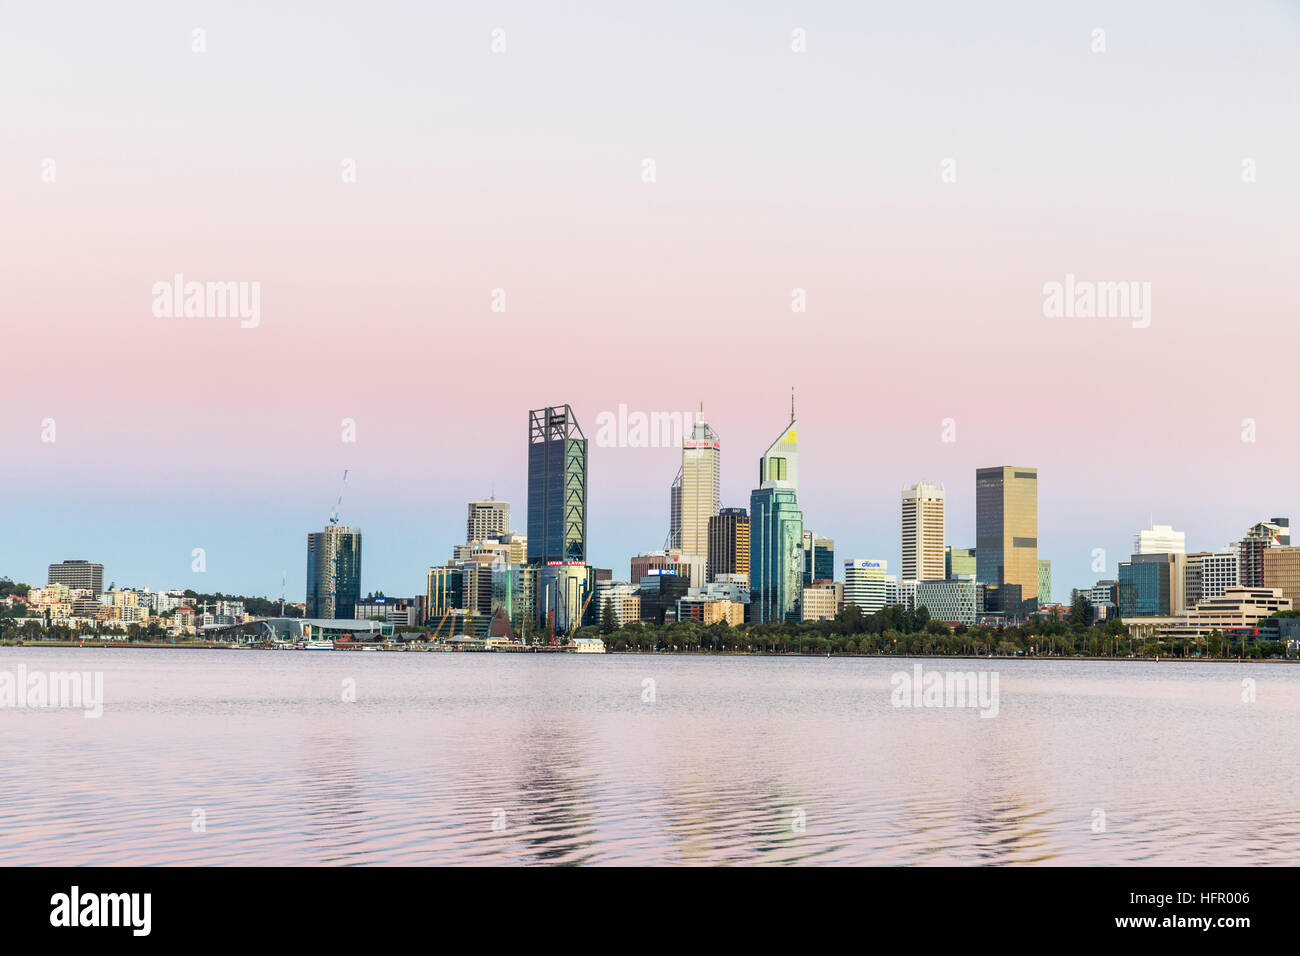 View across the Swan River to the city skyline from the South Perth foreshore, Perth, Western Australia, Australia - Stock Image